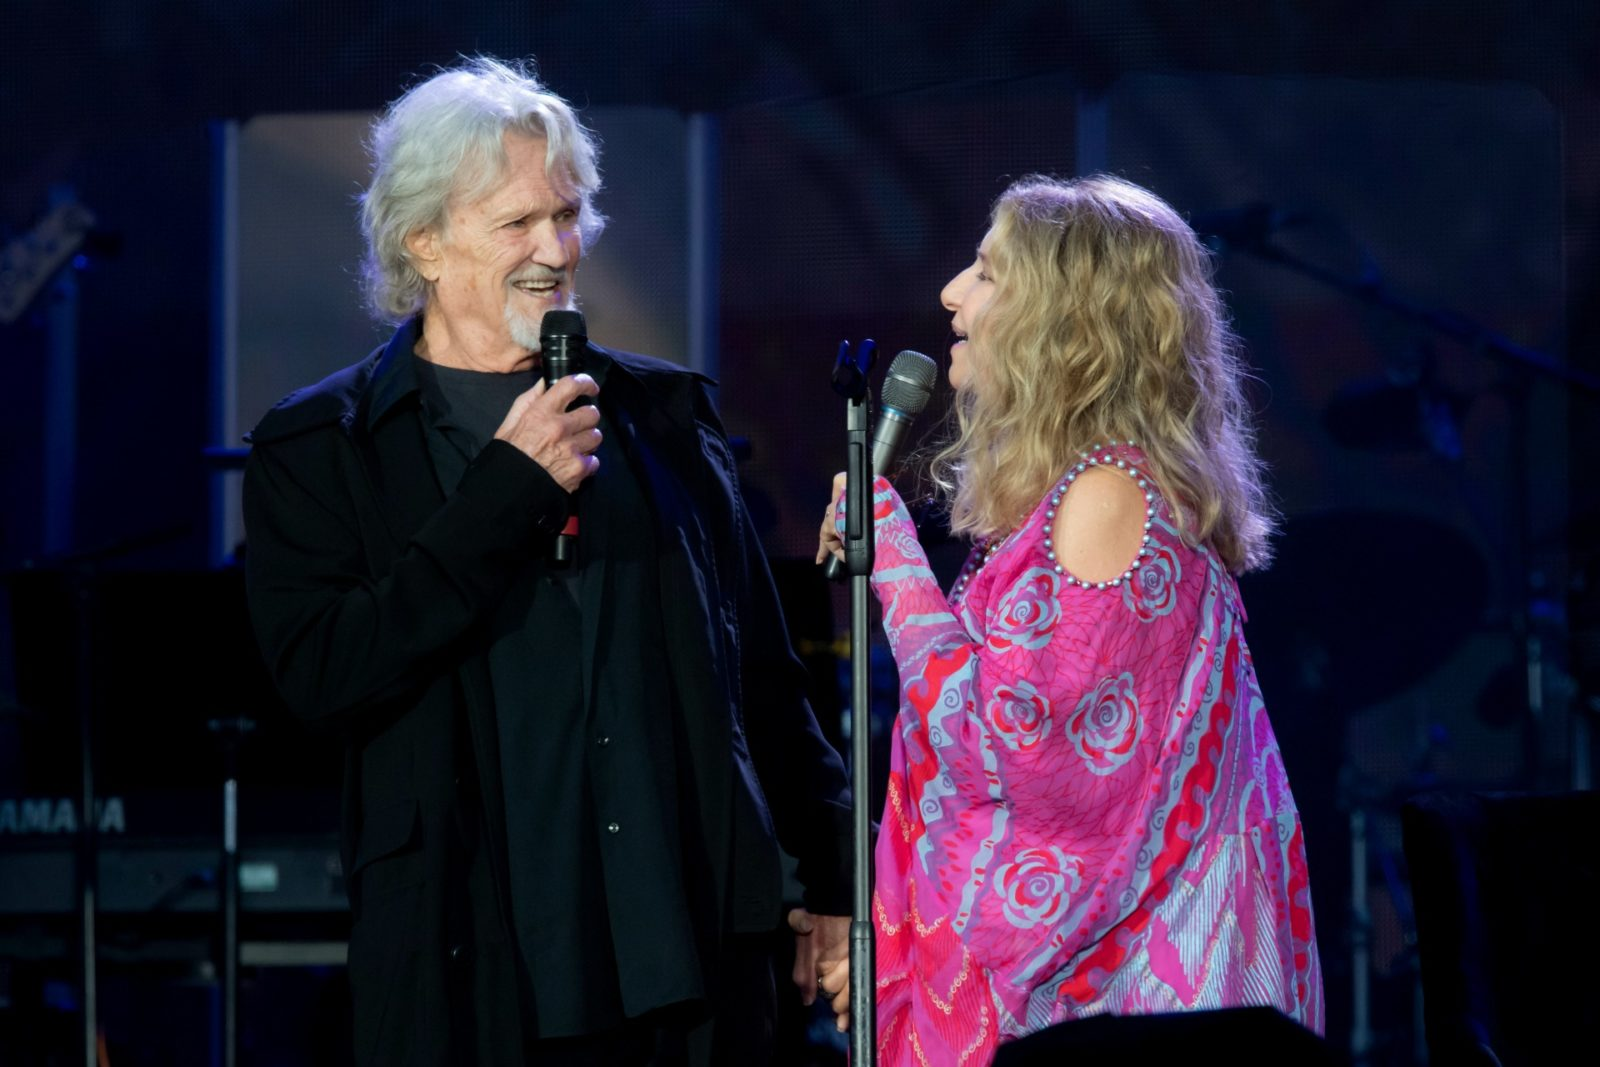 Barbra Streisand performs with Kris Kristofferson at Hyde Park in London.